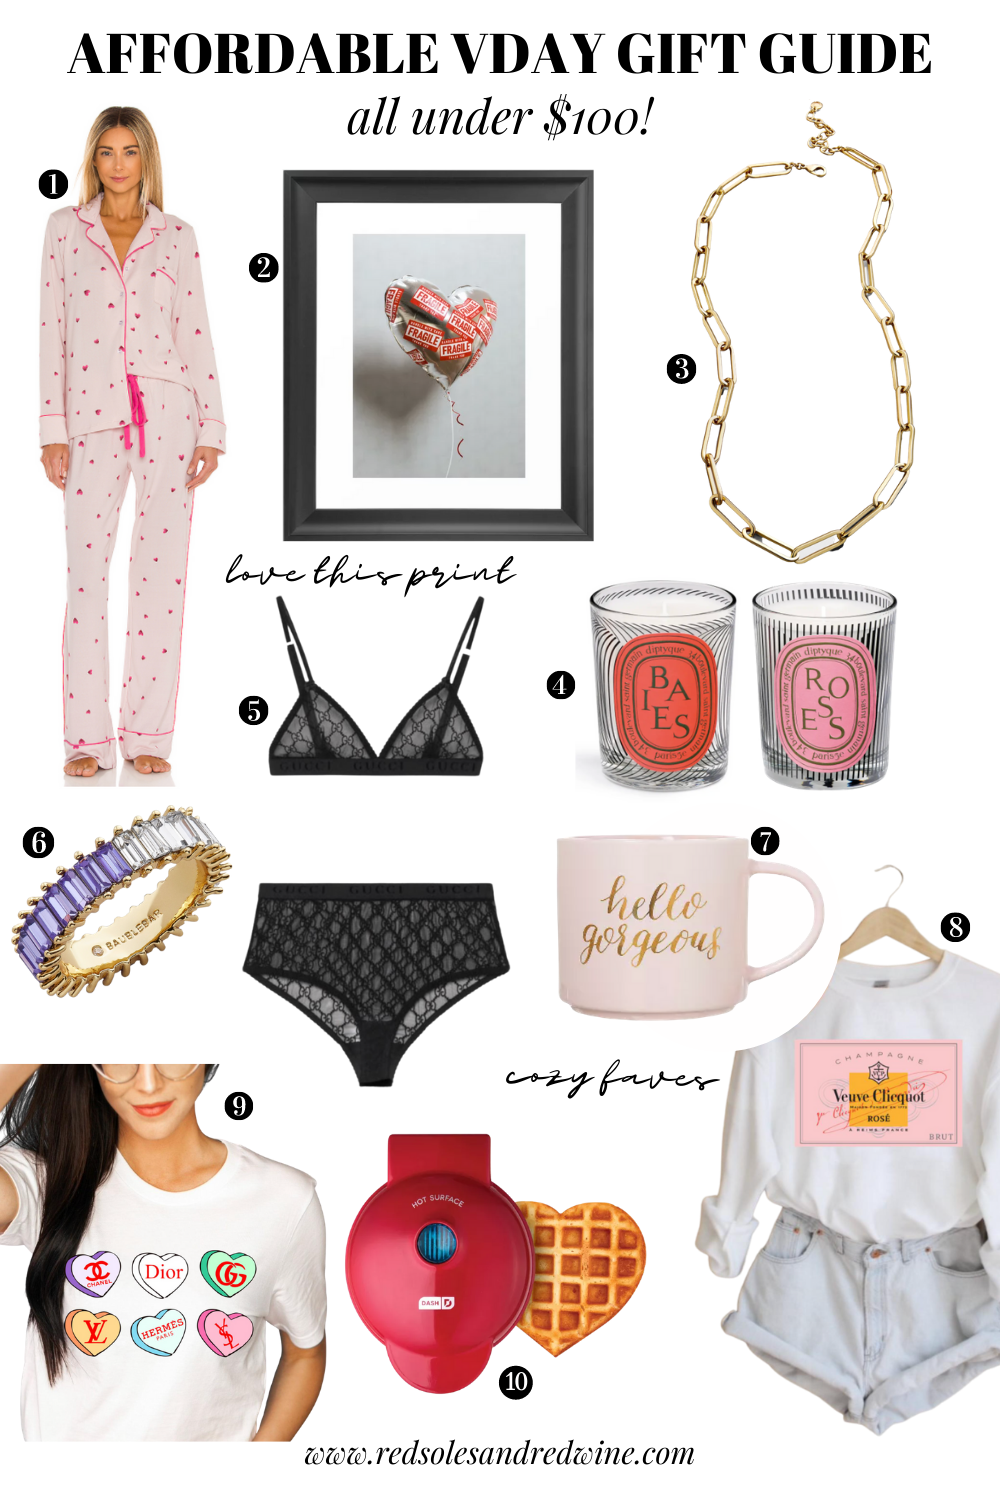 Valentine's Day Gift Guides, Vday gift guide, affordable vday gifts, gift ideas for girlfriends, valentine's day style ideas, Red Soles and Red Wine, Jennifer Worman